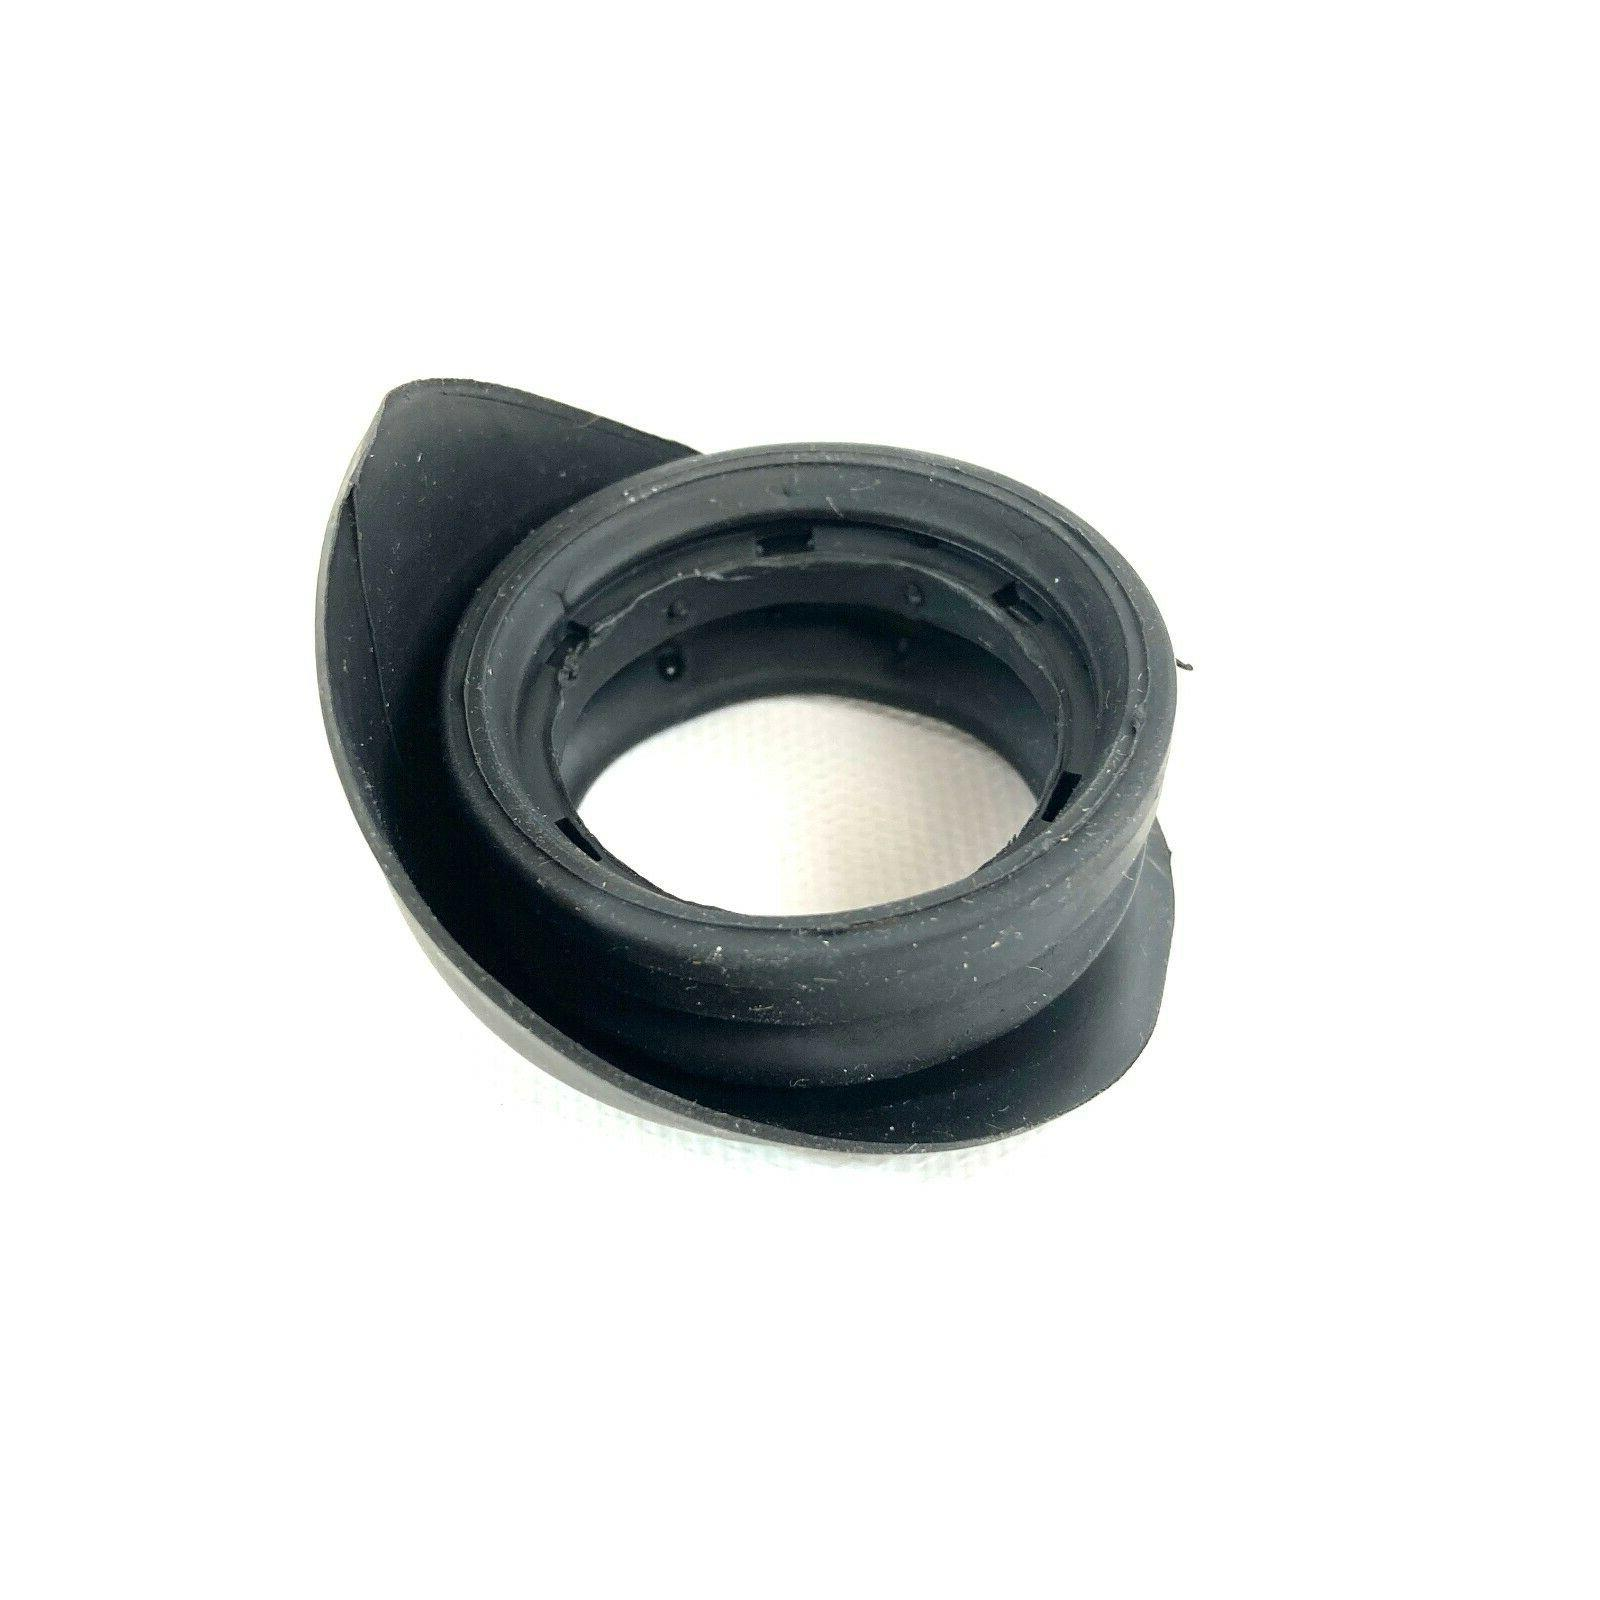 Cup Replacement PVS-7 and 14, Eyecup